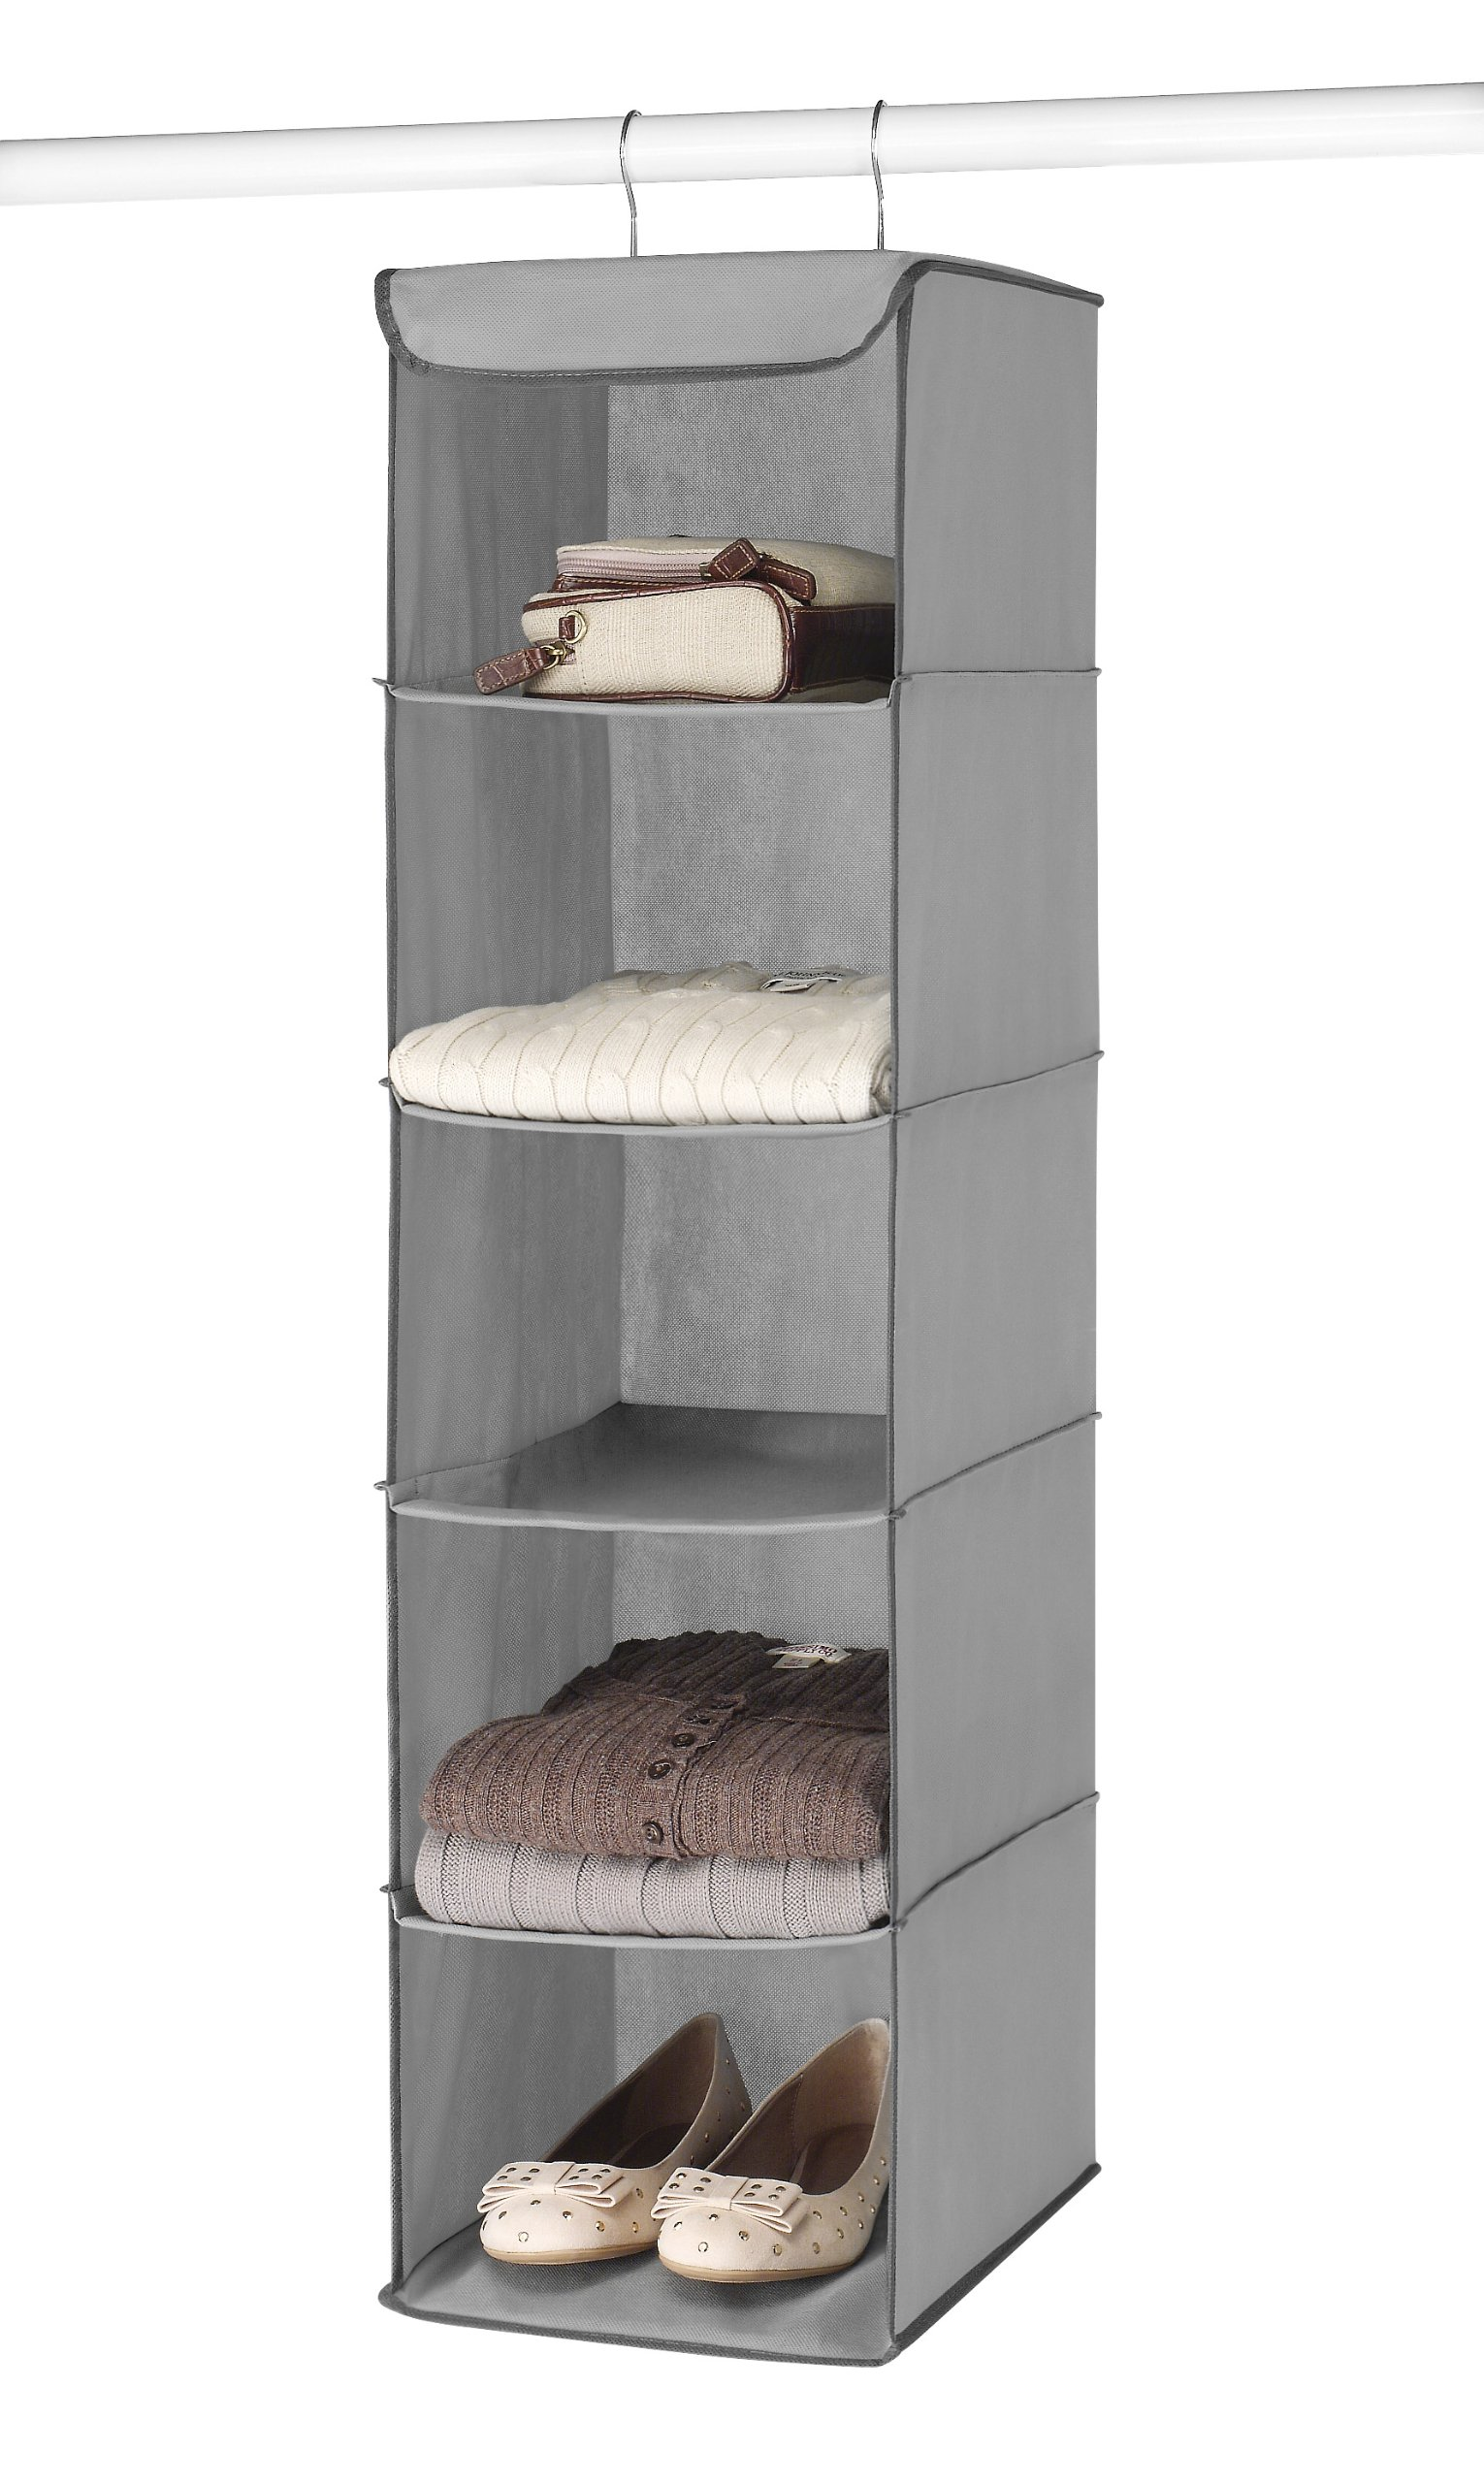 Shelves Hanging Closet Clothes Organizer Shoe Shelf